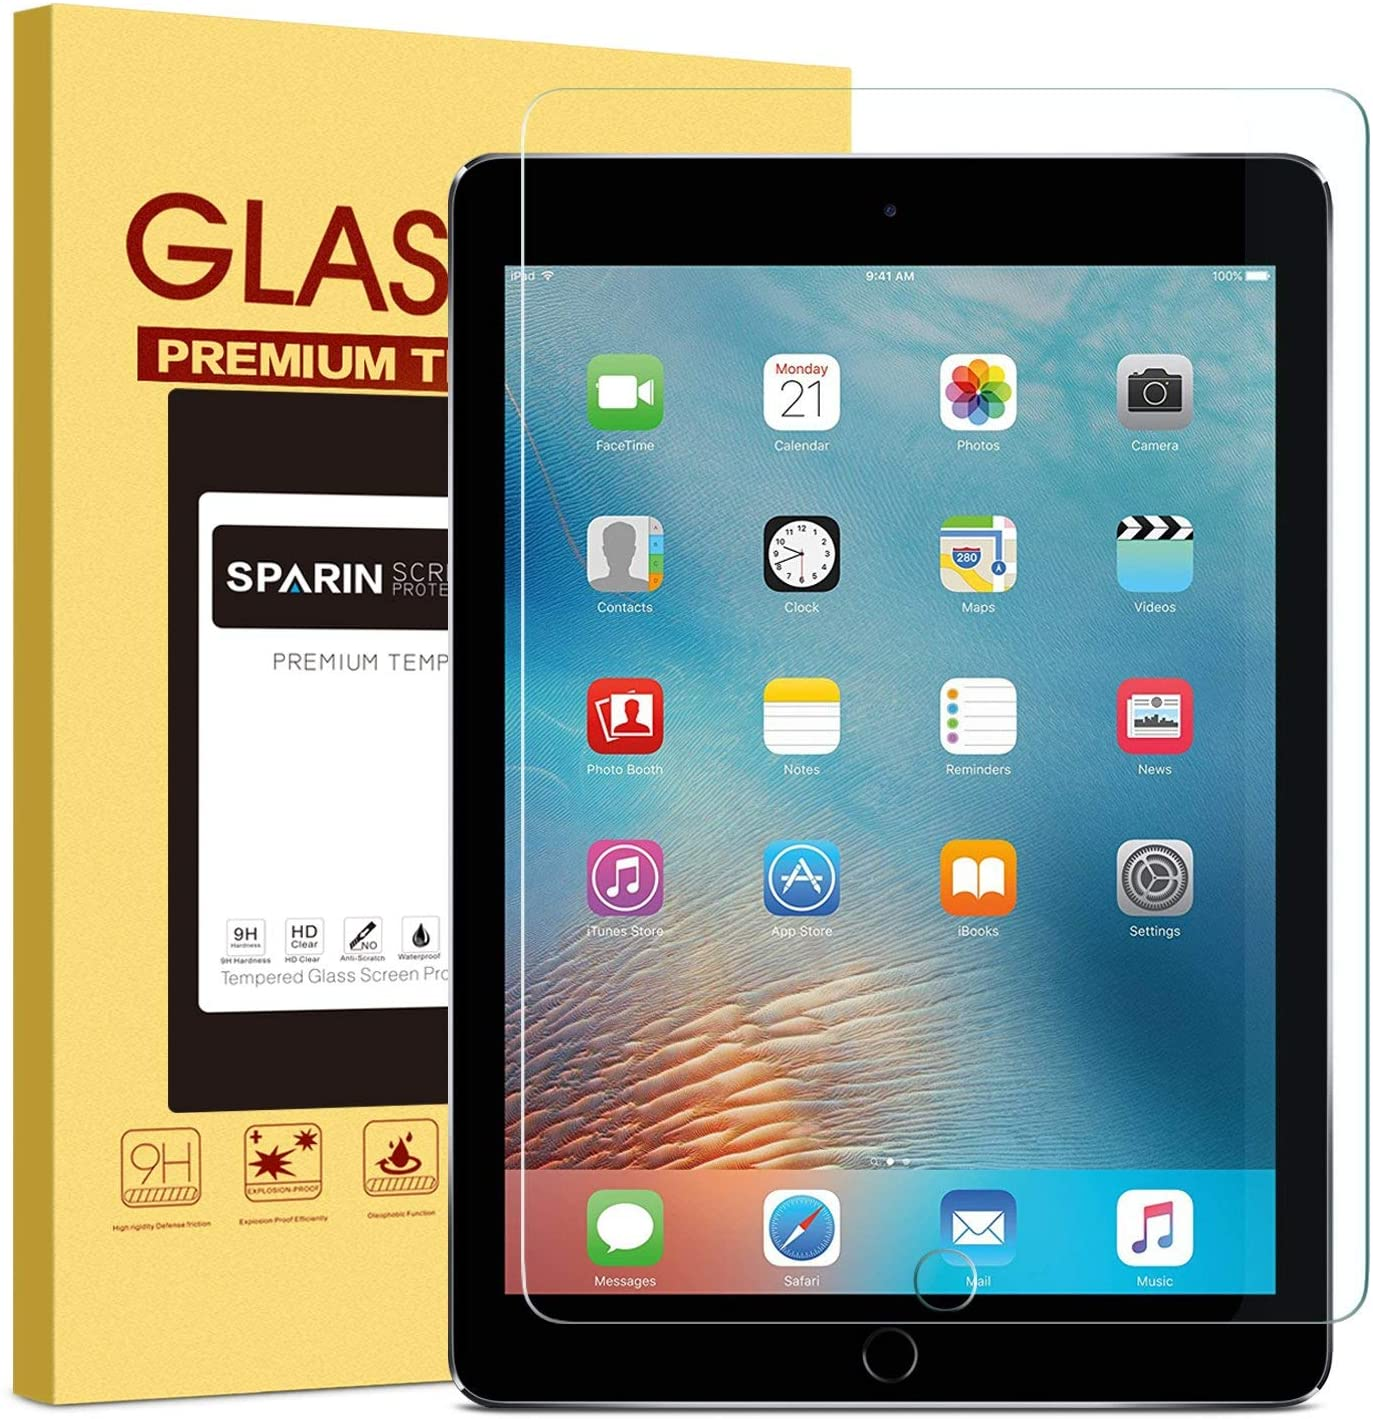 """New iPad 9.7"""" (2018 & 2017) / iPad Pro 9.7 / iPad Air 2 / iPad Air Screen Protector, SPARIN Tempered Glass Screen Protector - Apple Pencil Compatible / High Definition / Scratch Resistant: Computers & Accessories"""